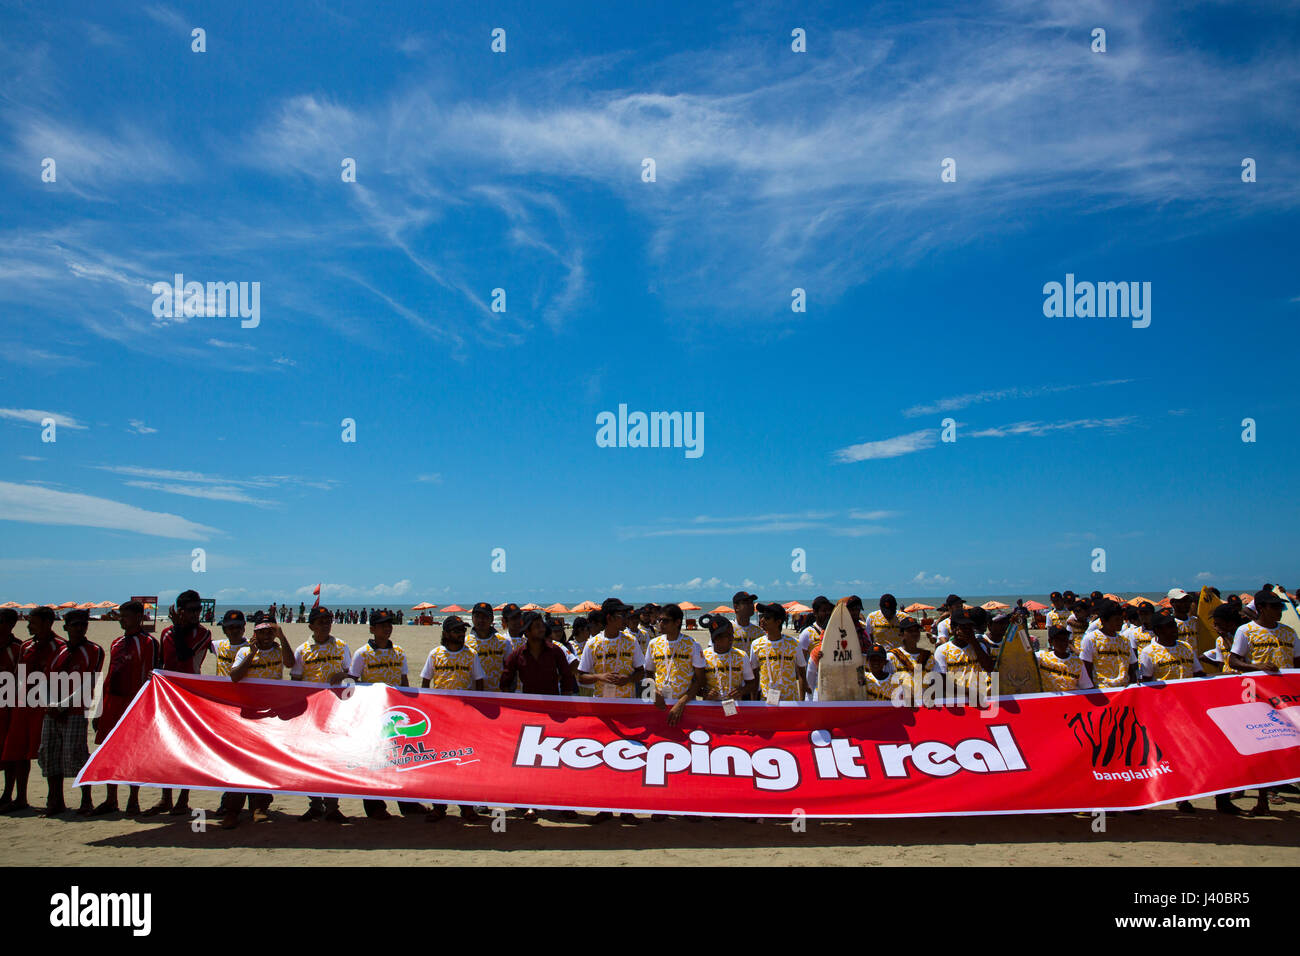 A colorful procession brings out at the Cox's Bazar sea beach to mark the International Coastal Cleanup Day - Stock Image